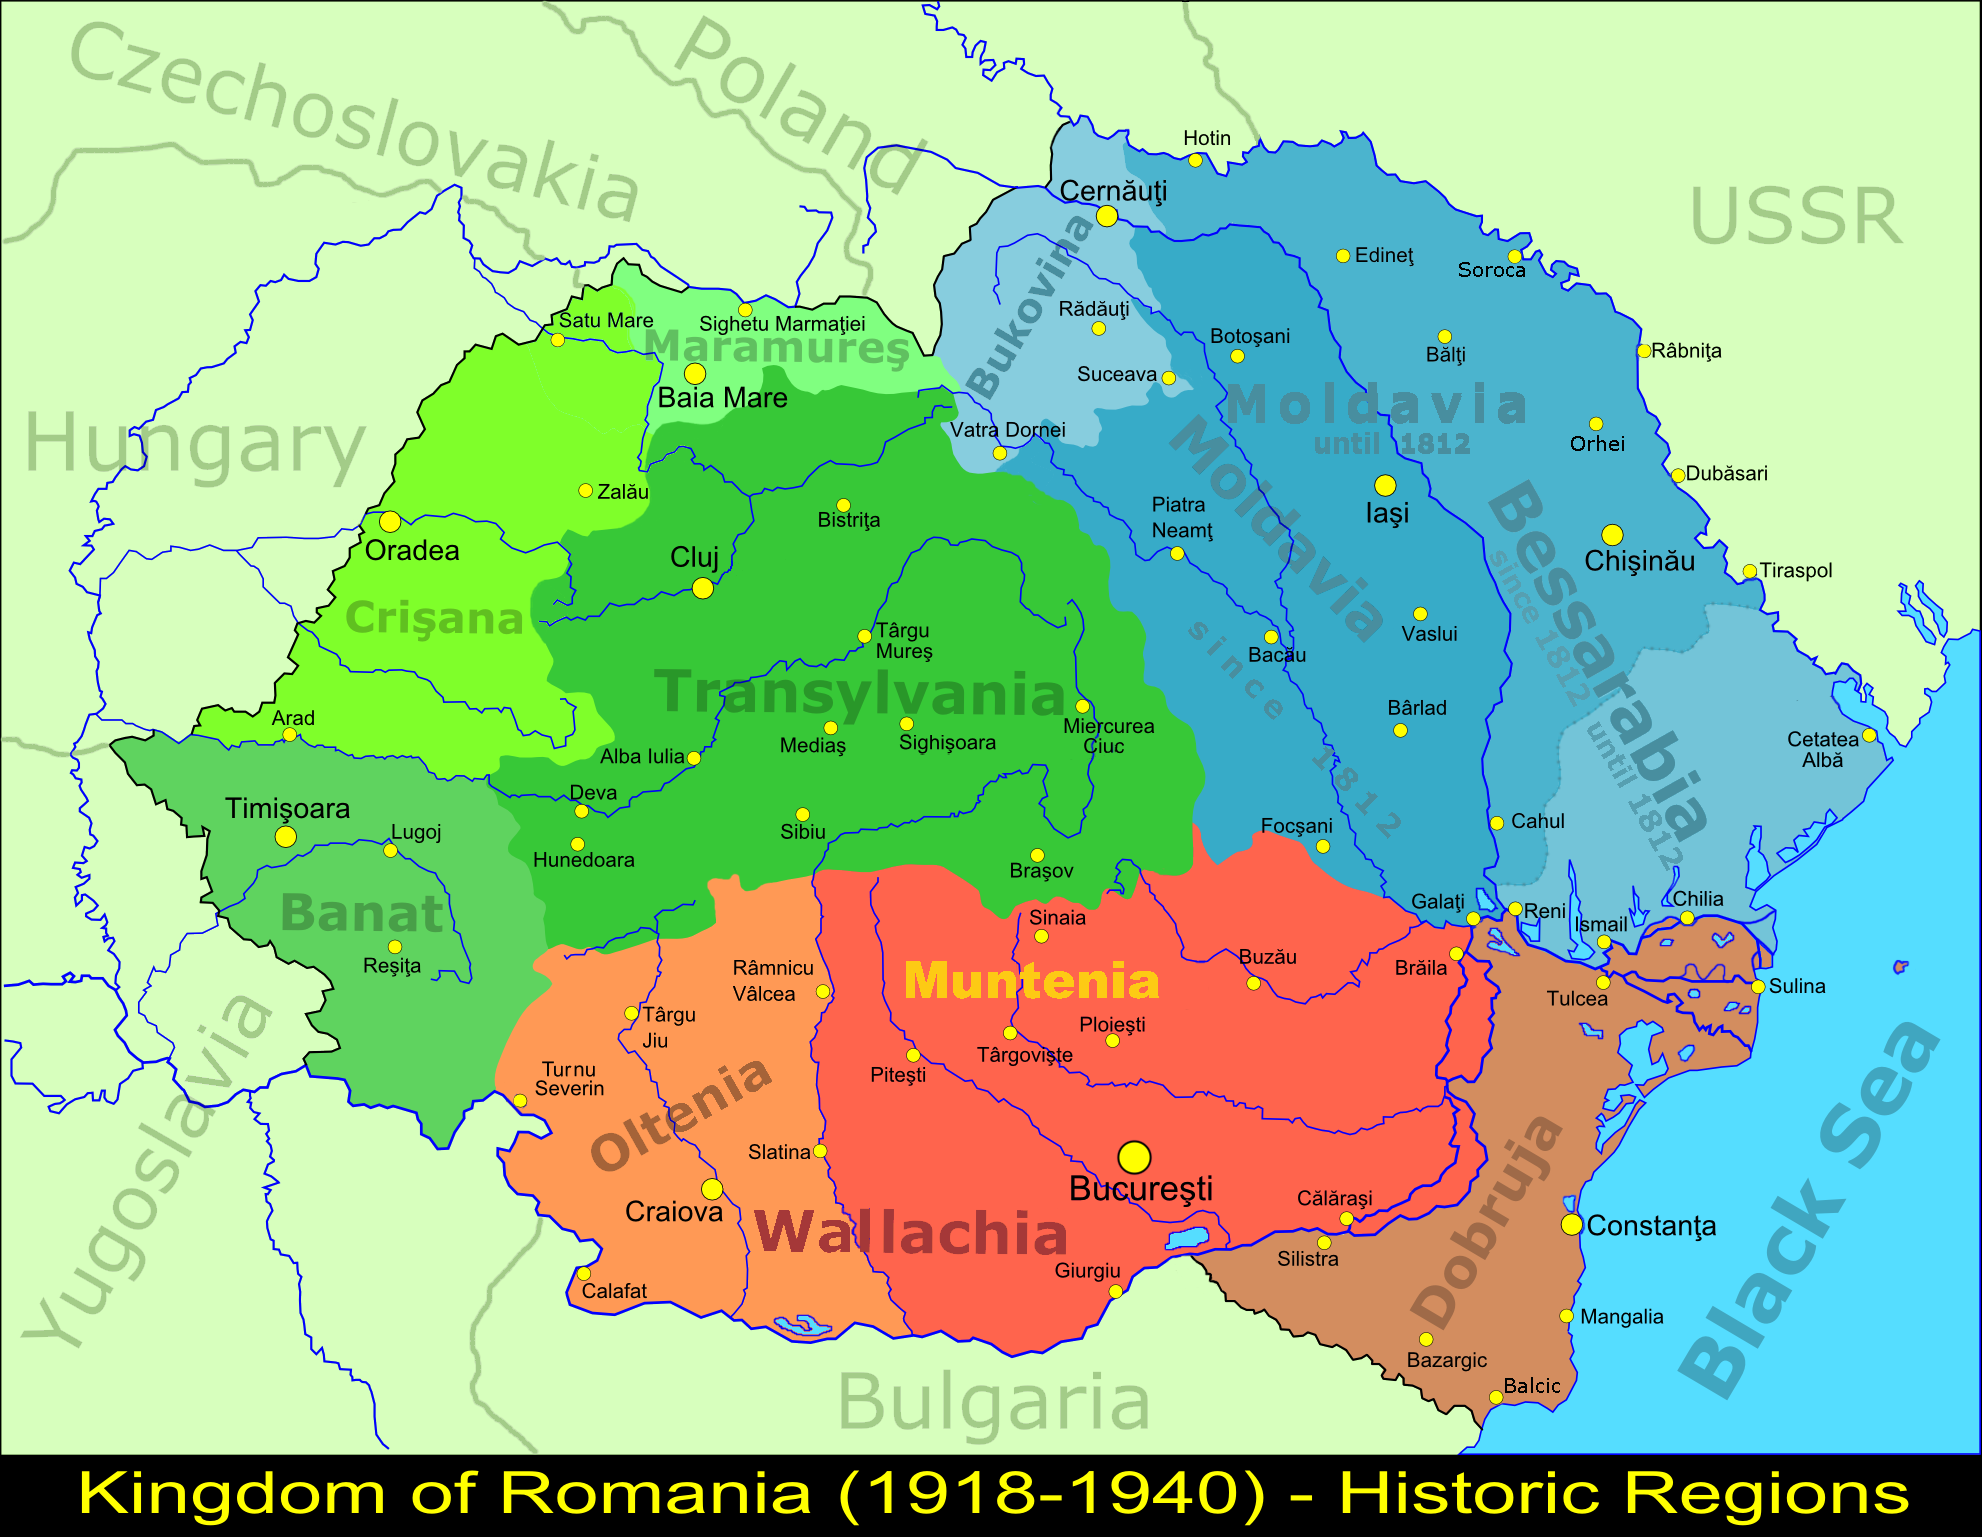 map of the regions of greater romania 1921 1940 with all the stolen territories of other countries moldavia bulgaria hungary